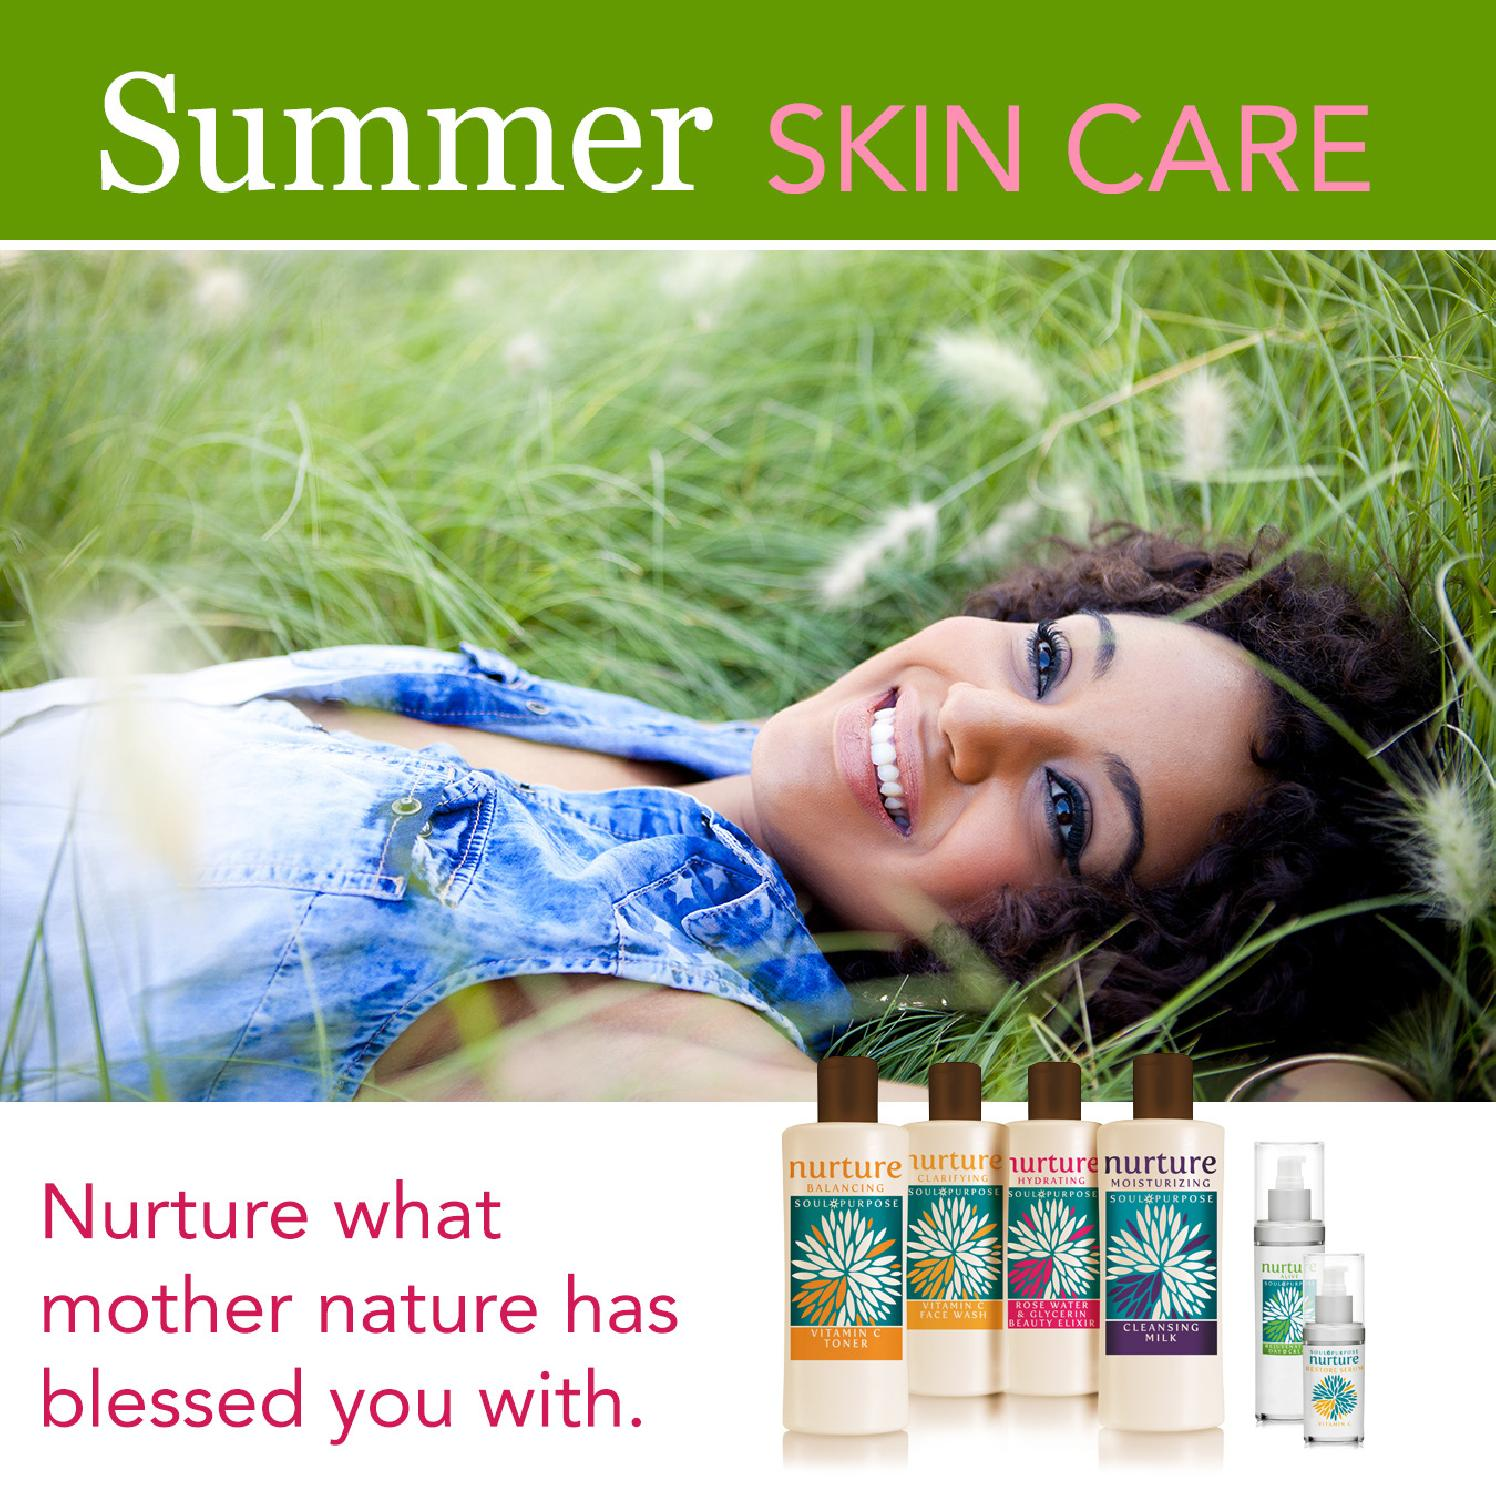 Summer Skin Care: Soul Purpose Summer Skin Care Guide By Soul Purpose